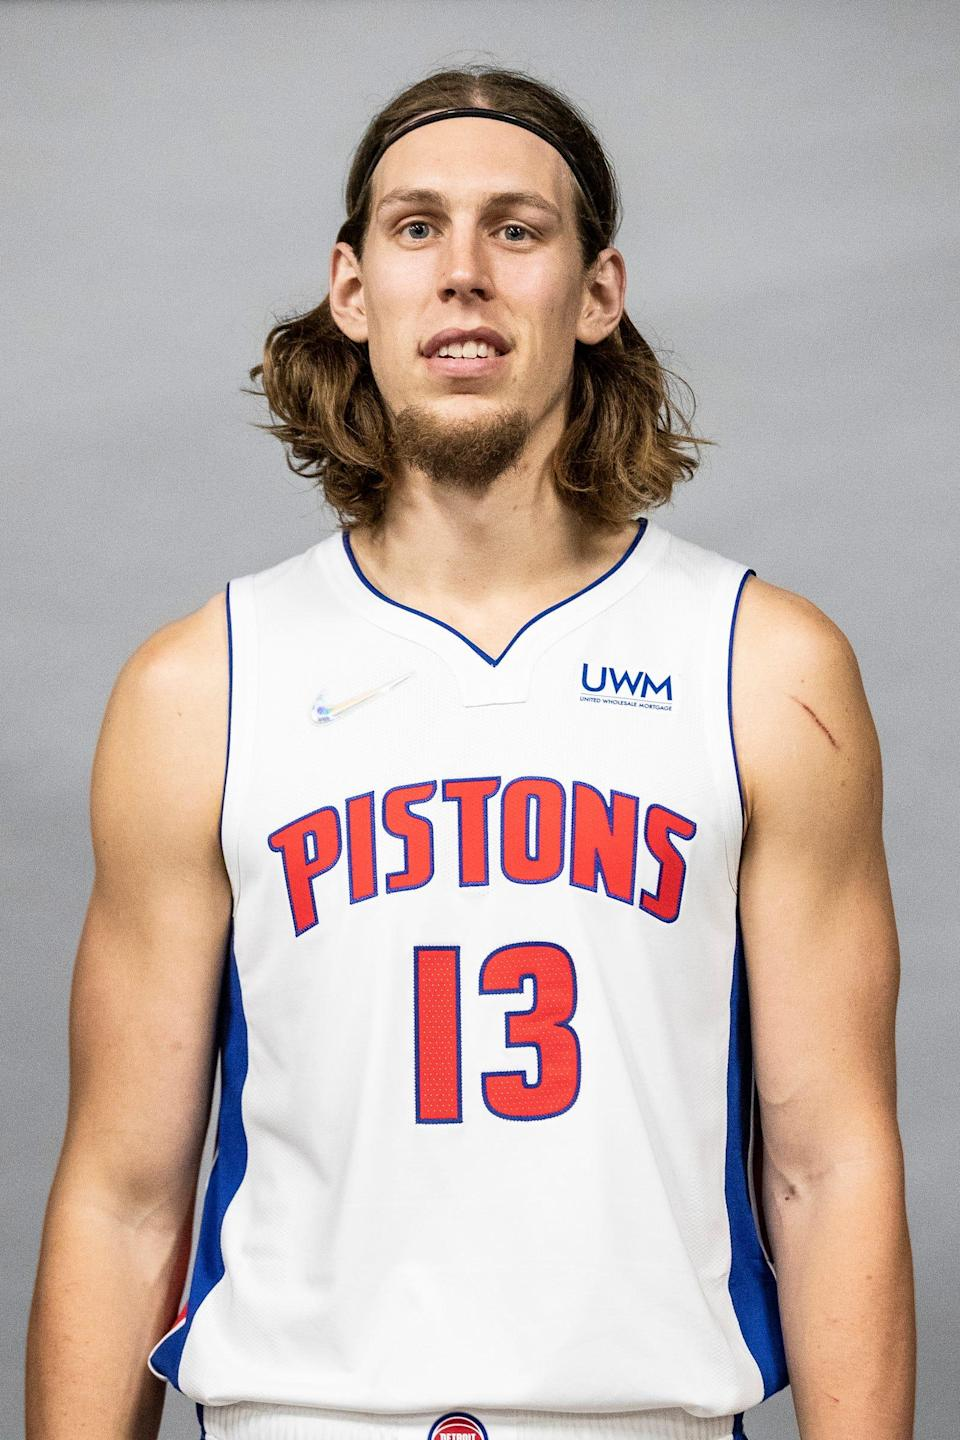 Detroit Pistons center Kelly Olynyk (13) poses for a photo during media day at the Little Caesars Arena in Detroit on Monday, Sept. 27, 2021.